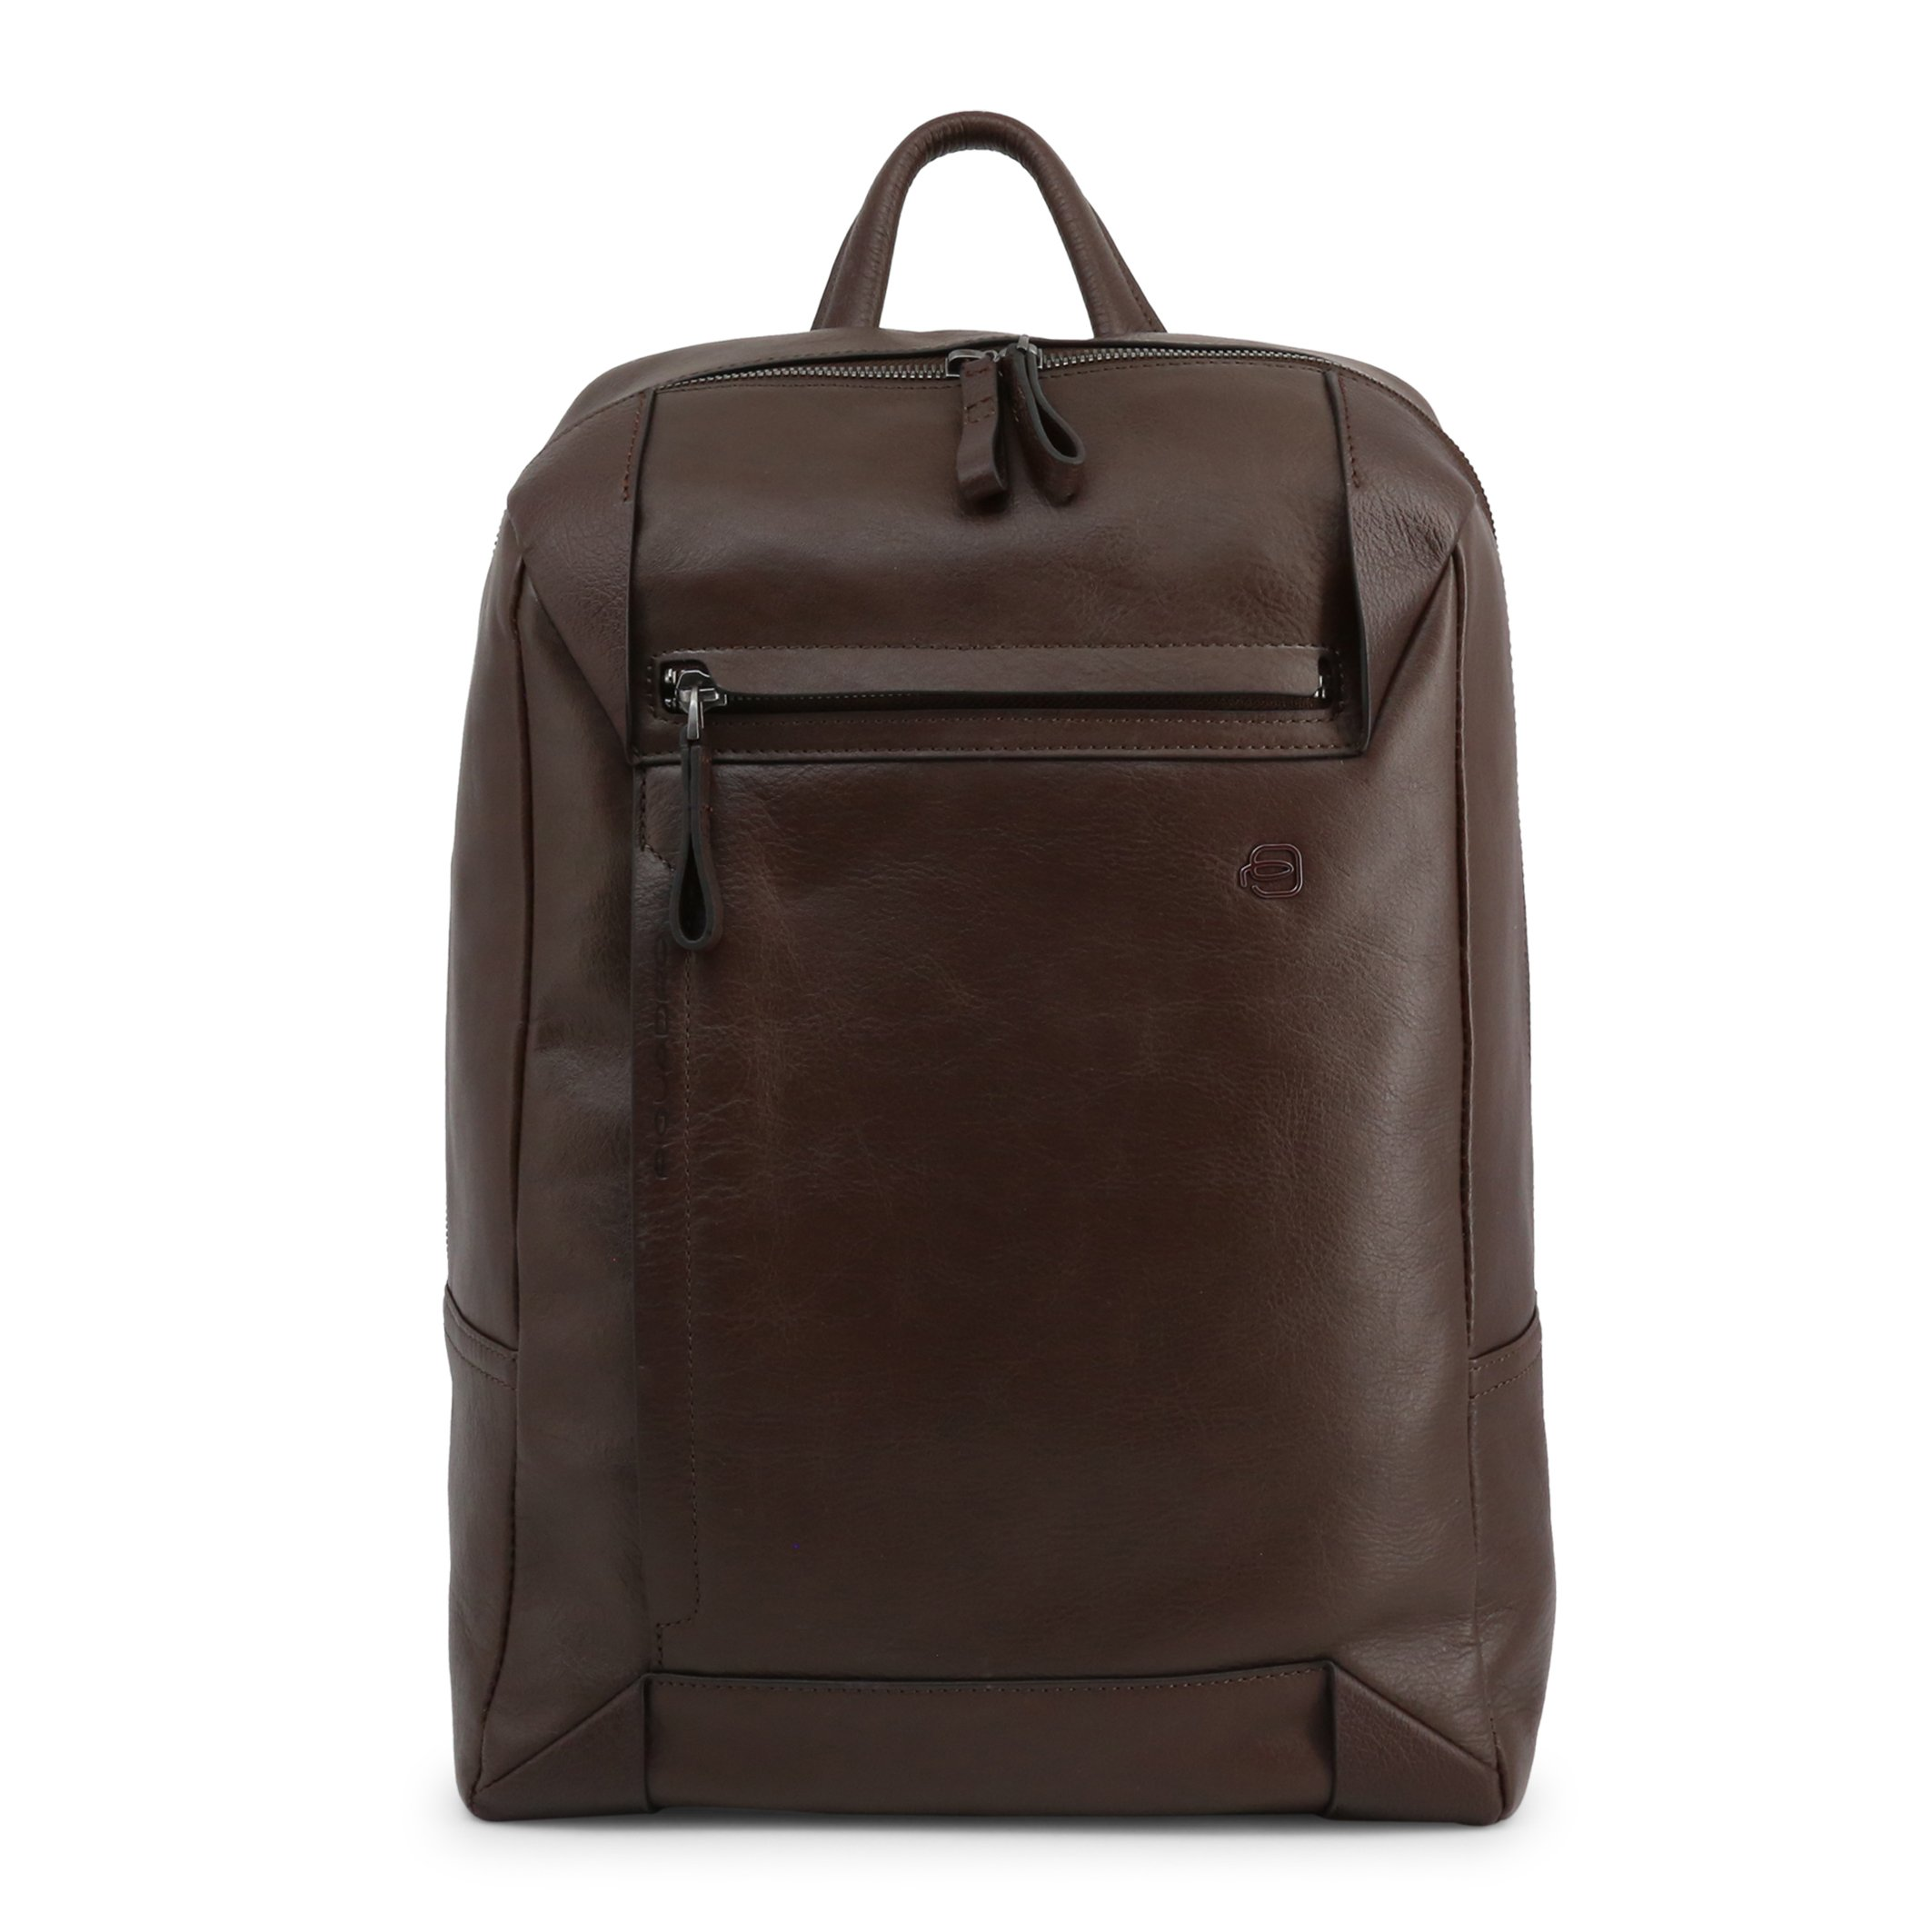 Piquadro Men's Backpack Various Colours CA4260S94 - brown NOSIZE